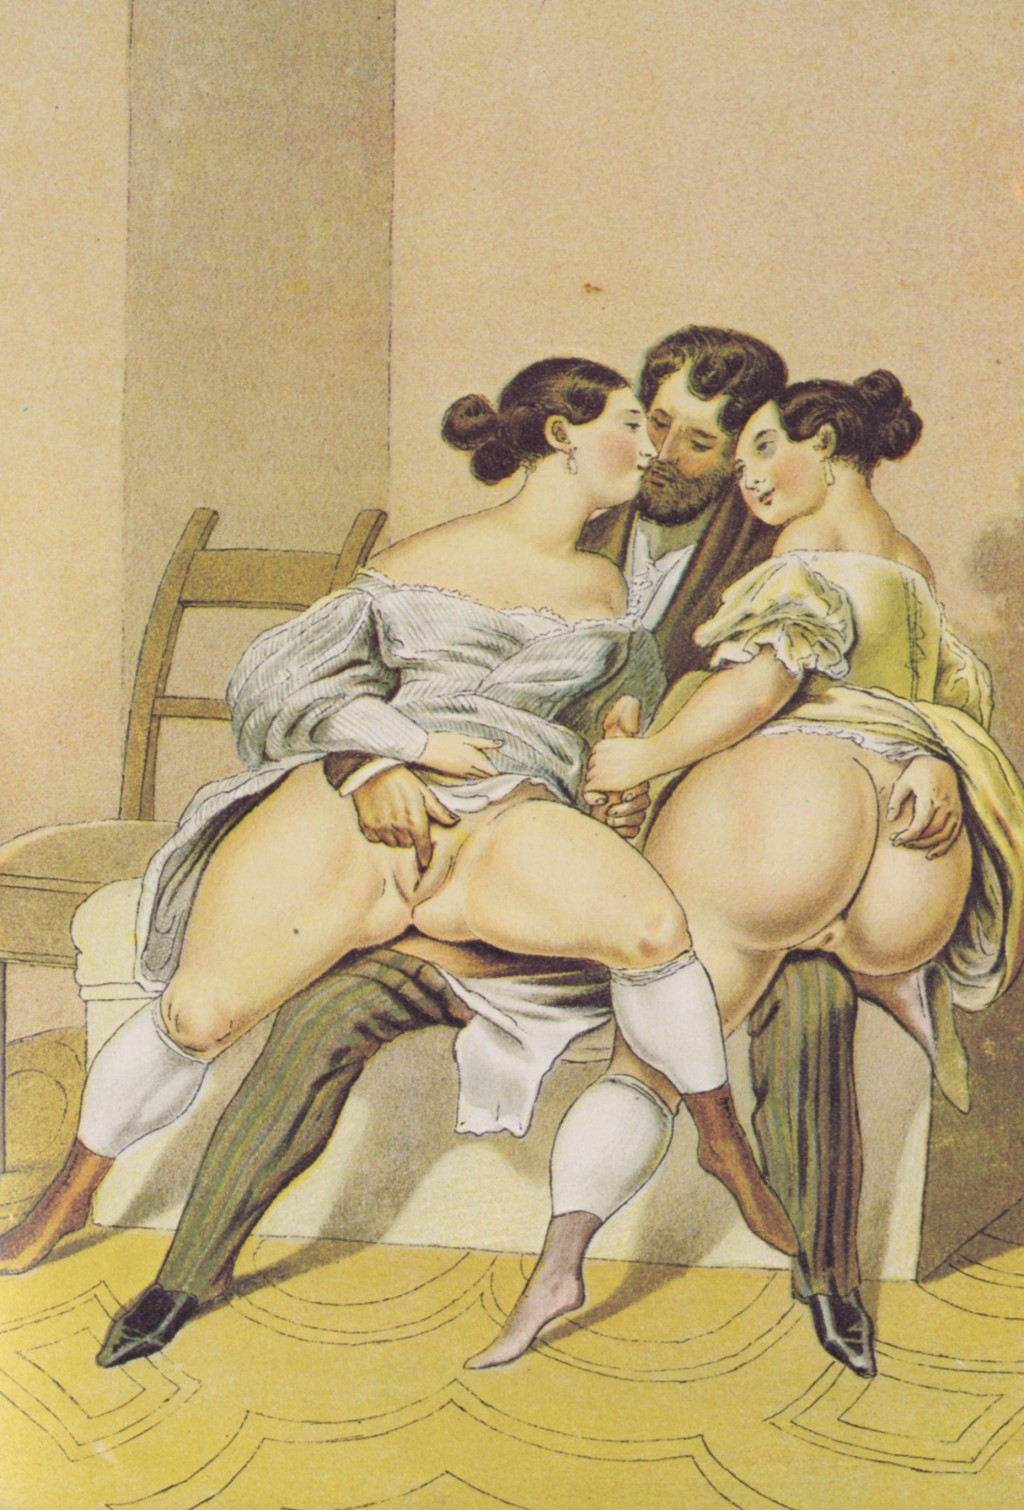 Peter Fendi: Erotic Lithographs: peter-fendis-lithographs_8_20121009_1635351753.jpeg